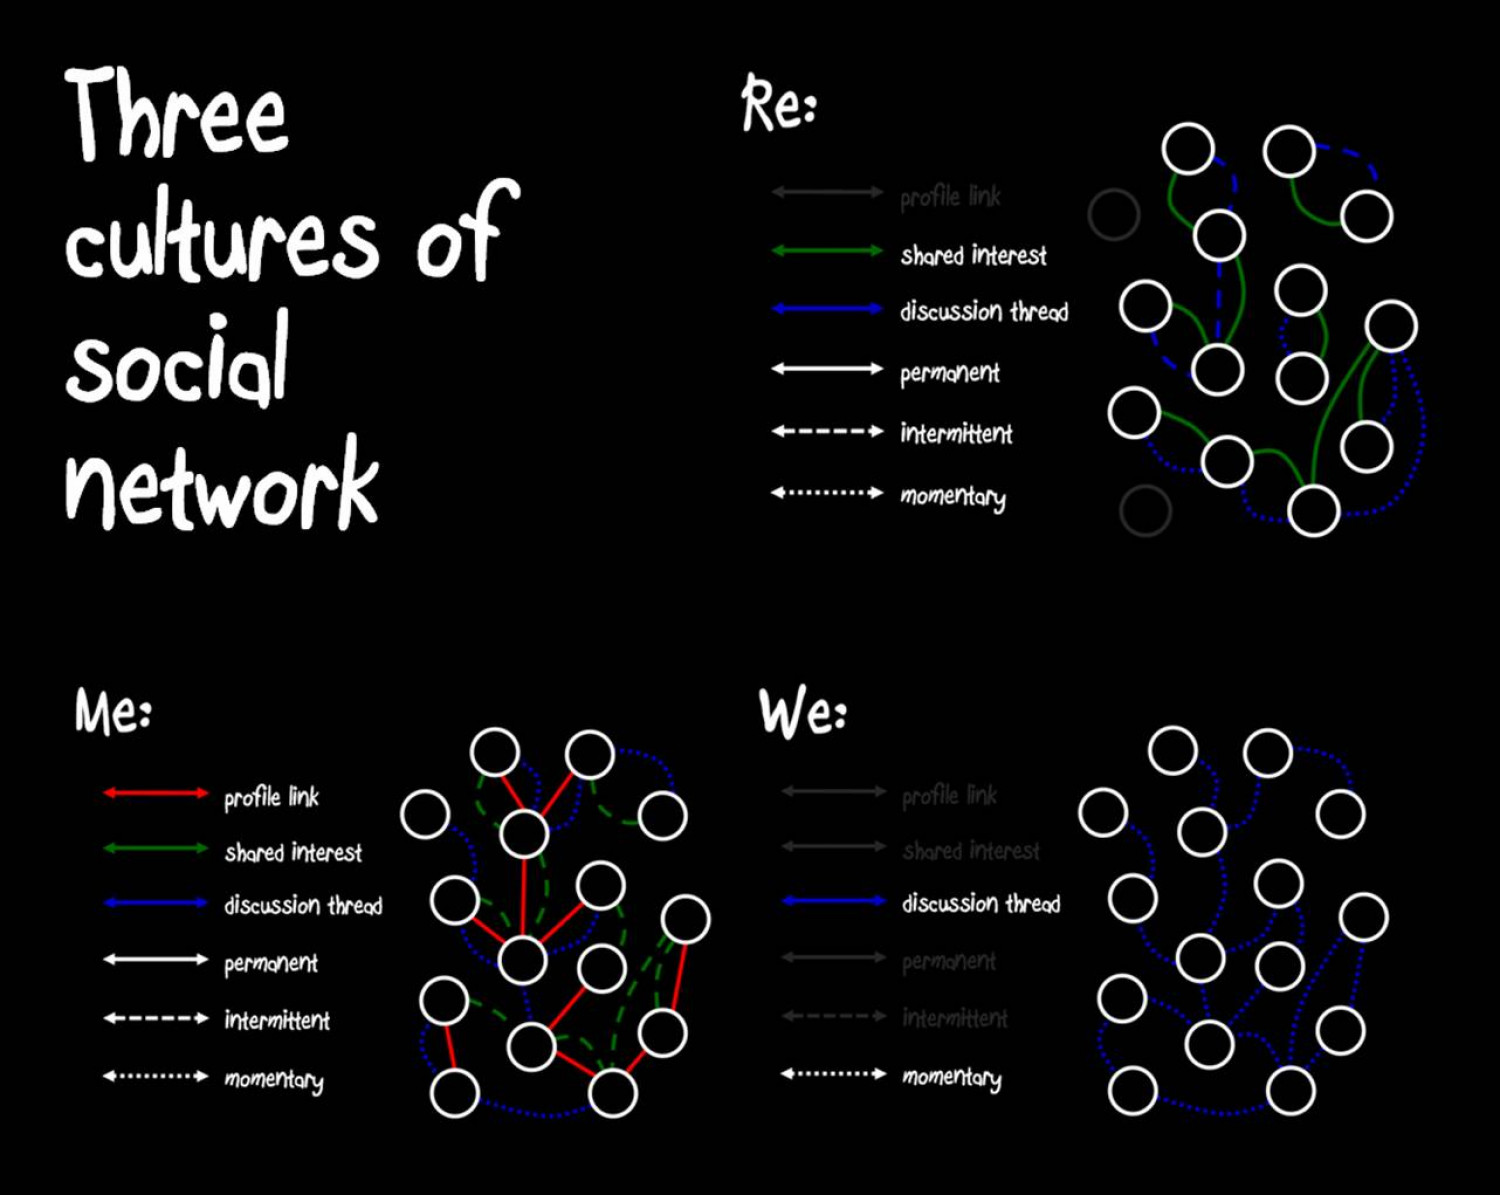 Three Cultures of Social Network Infographic